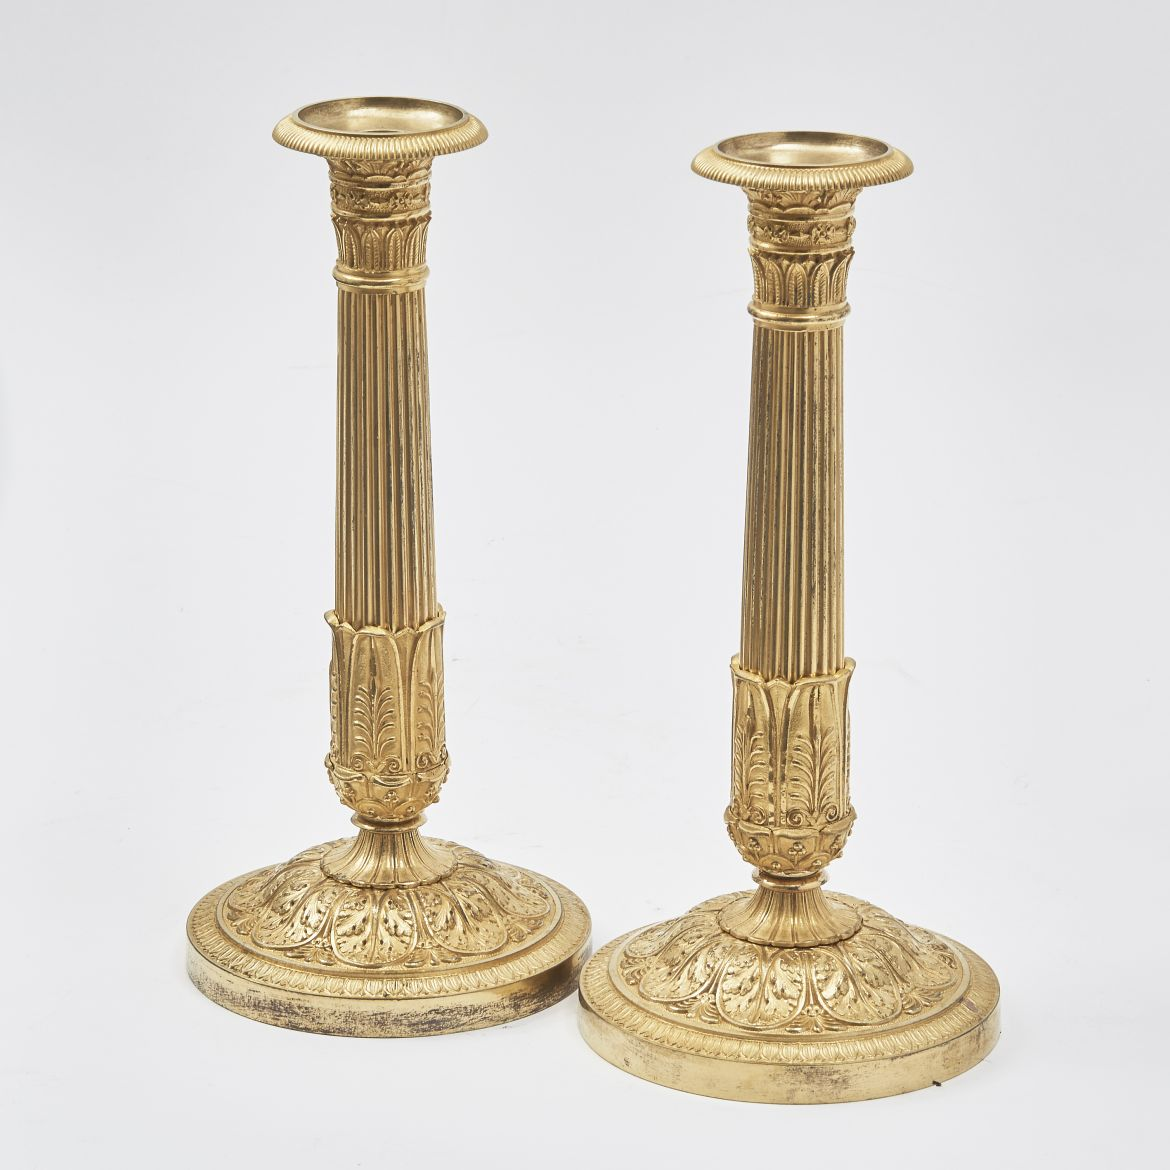 French Neoclassical Gilt Bronze Candlesticks